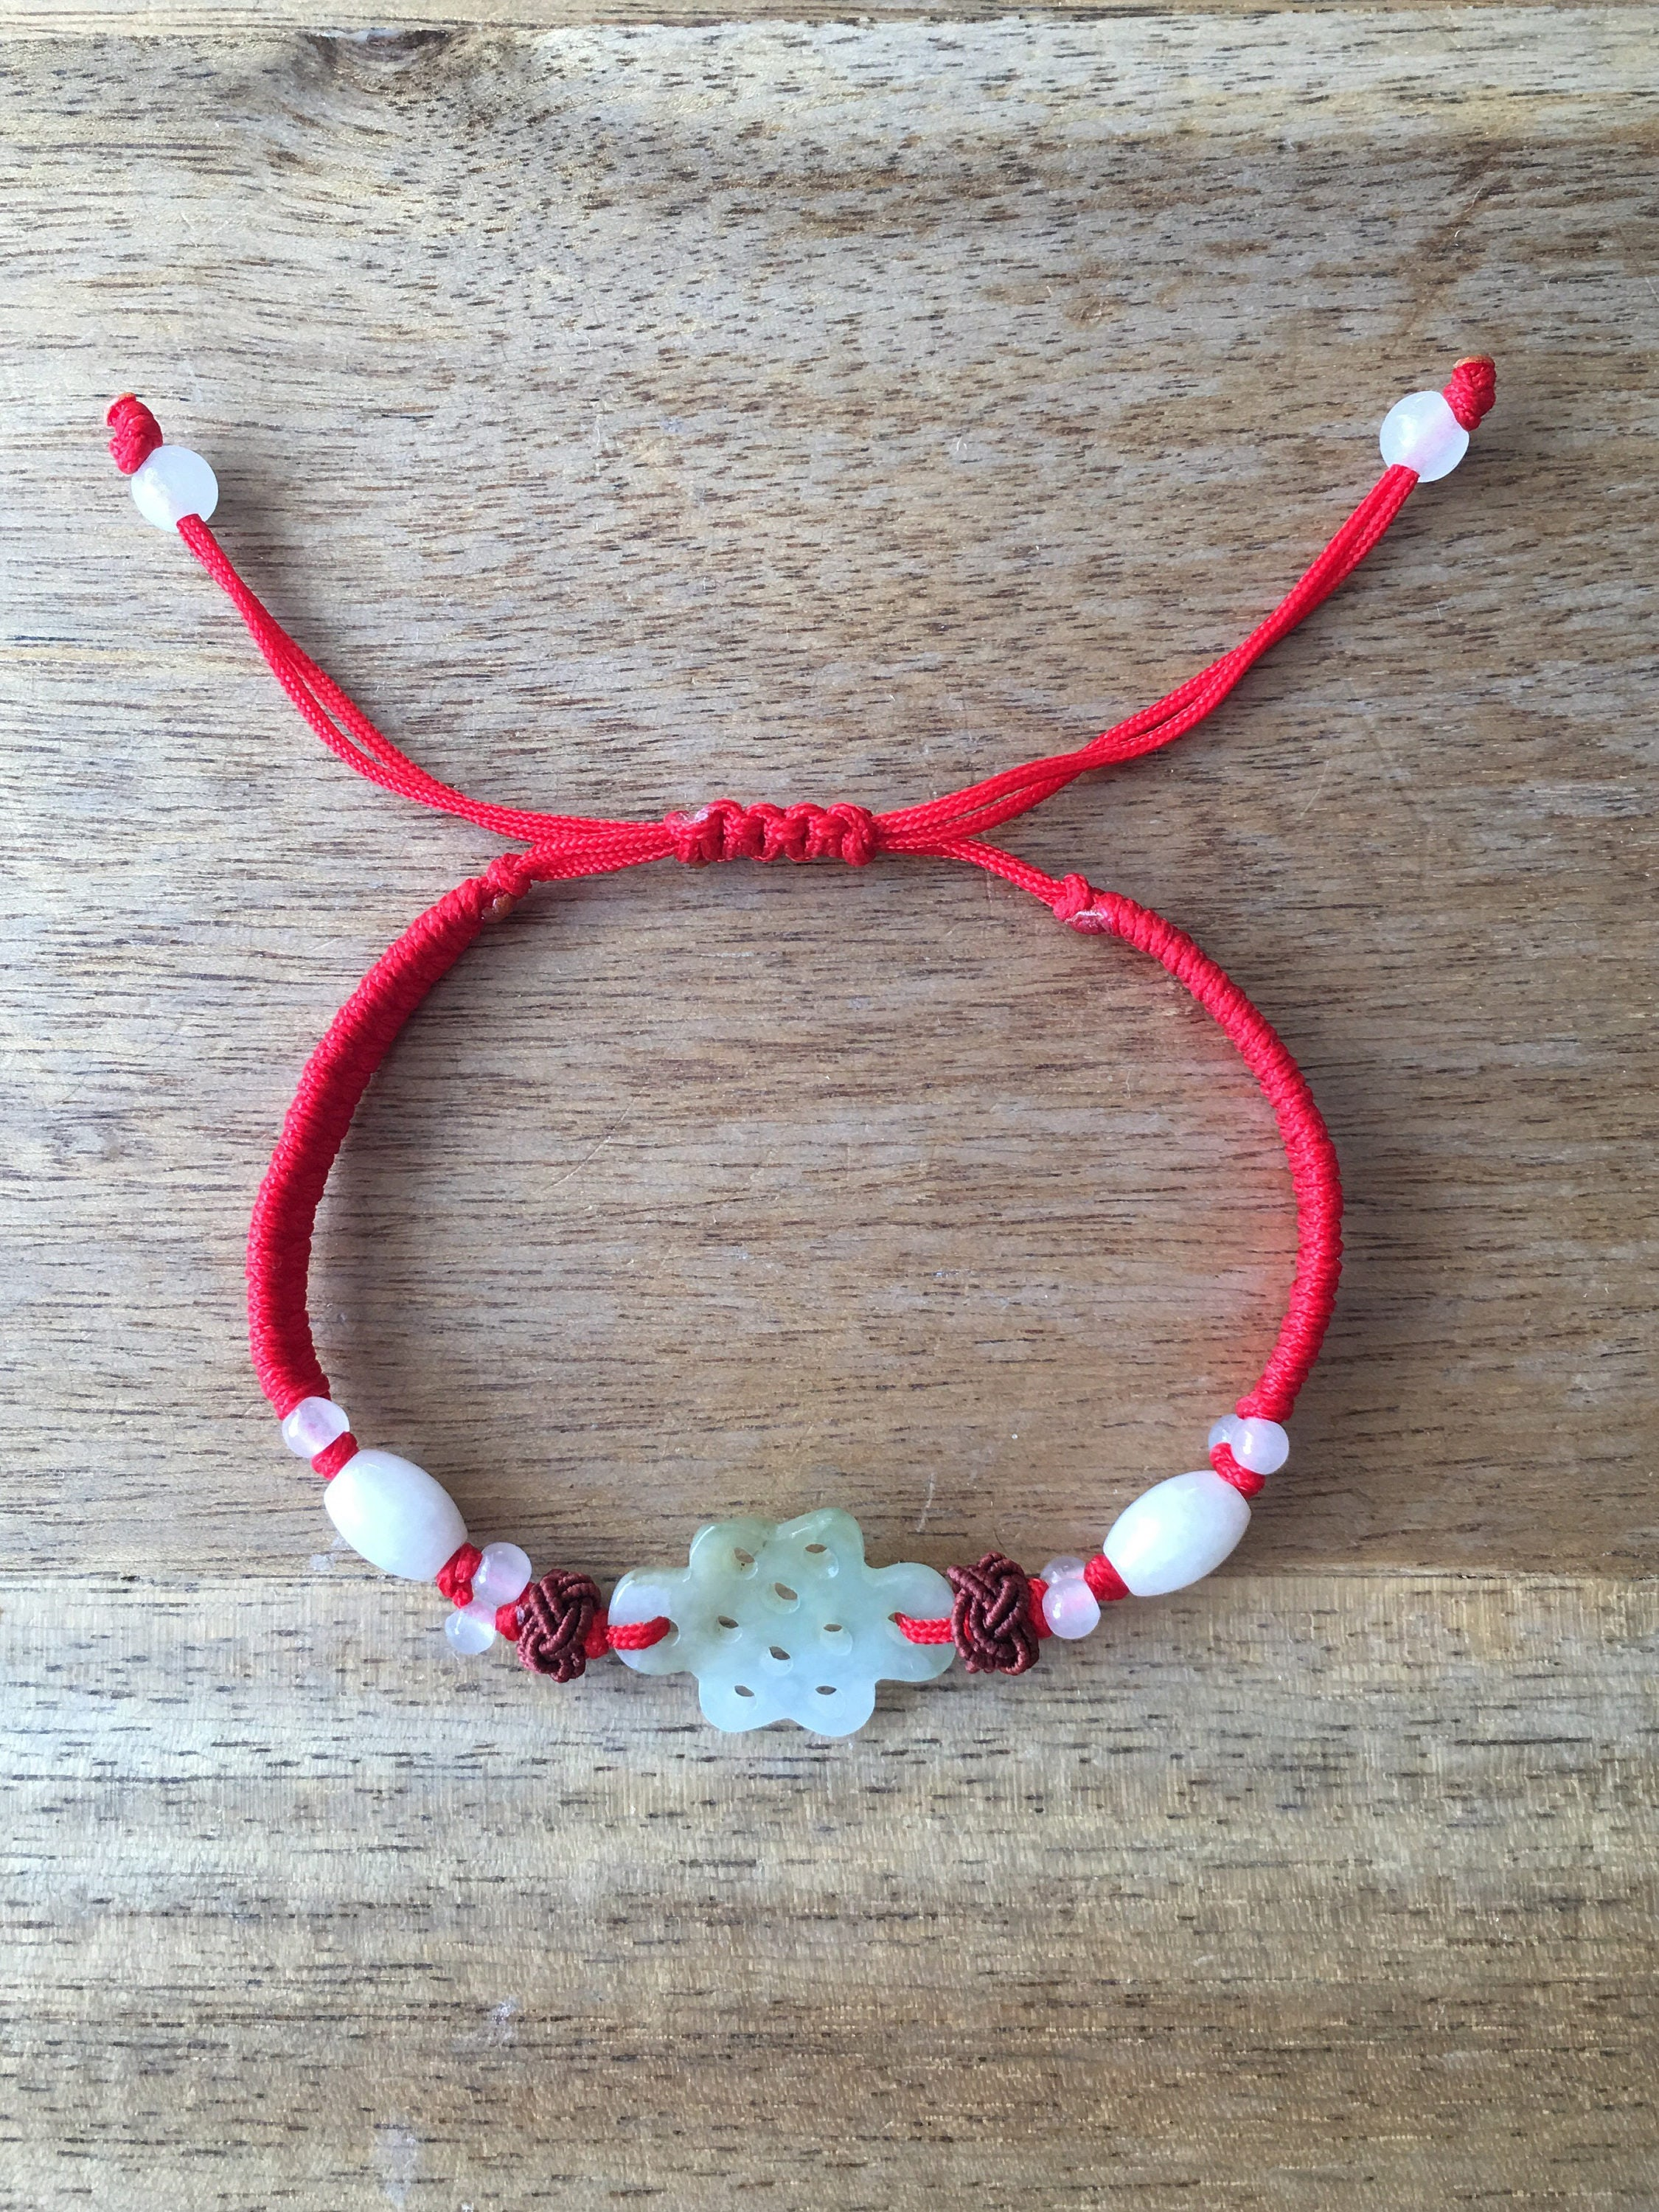 bracelet braided string no eye text index success for silver red hamsa lucky good luck evil with bracelets hand